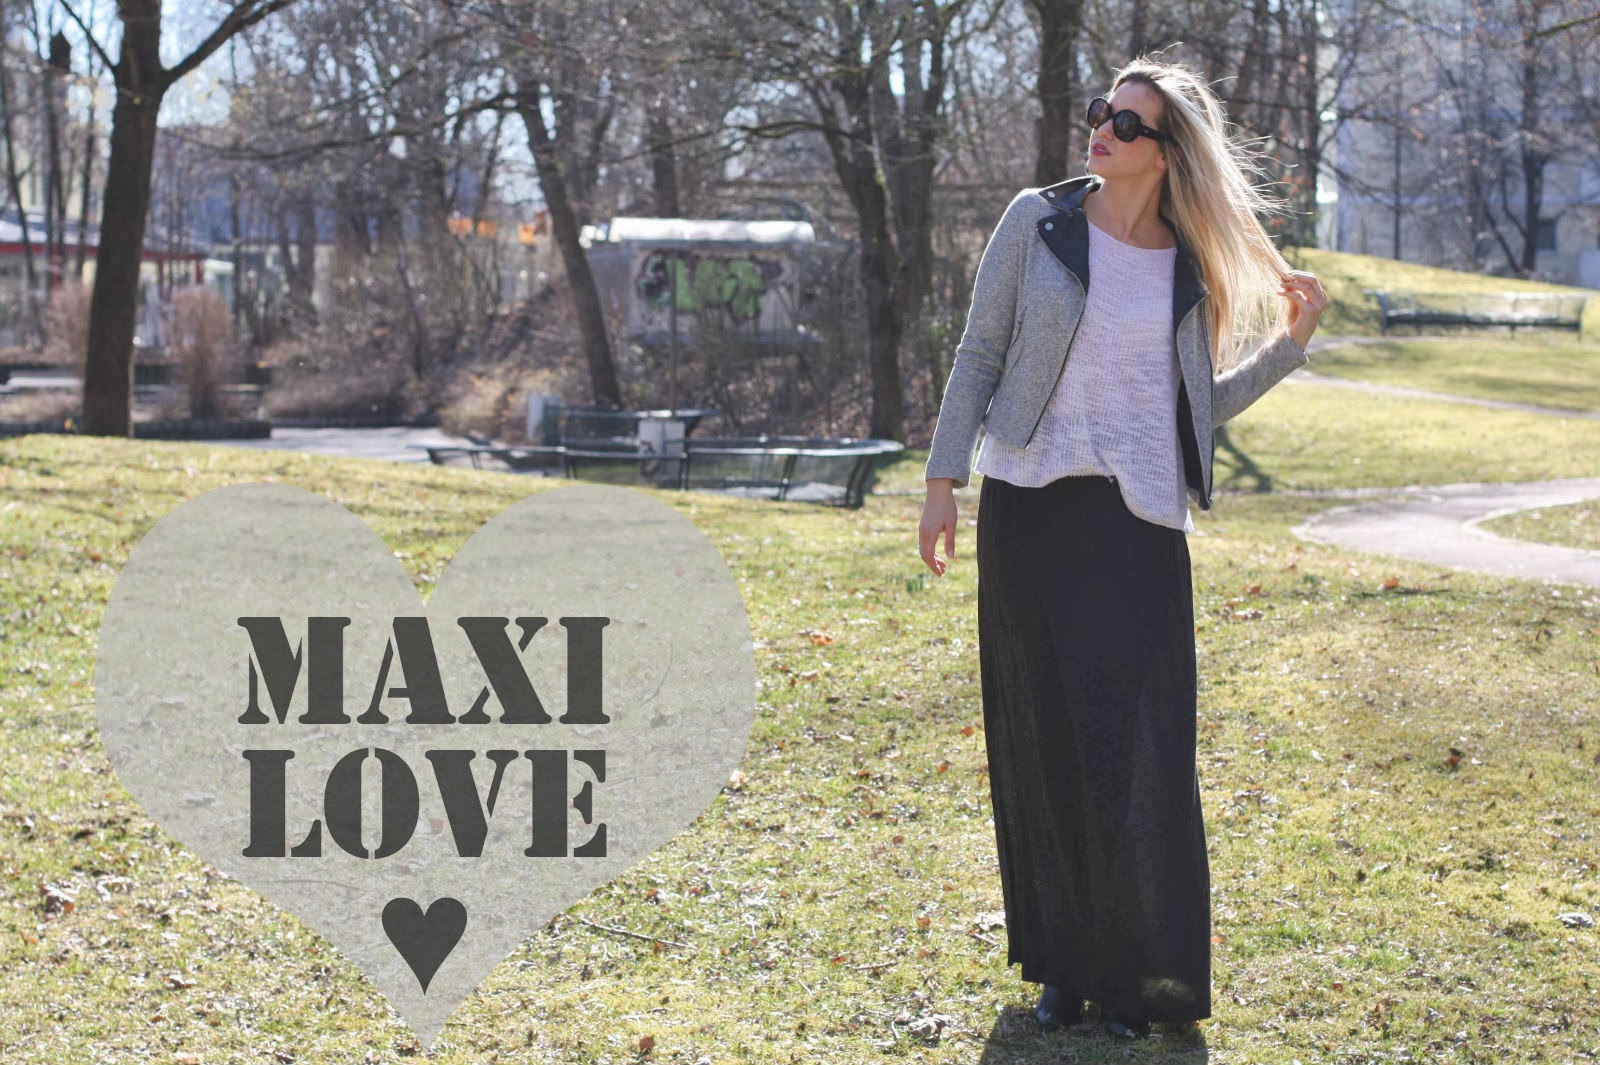 Maxiskirt, Maxirock, Modeblog, Fashionblog, Fashion Blog, Patrizia Paul, The Paste Blog, thepasteblog